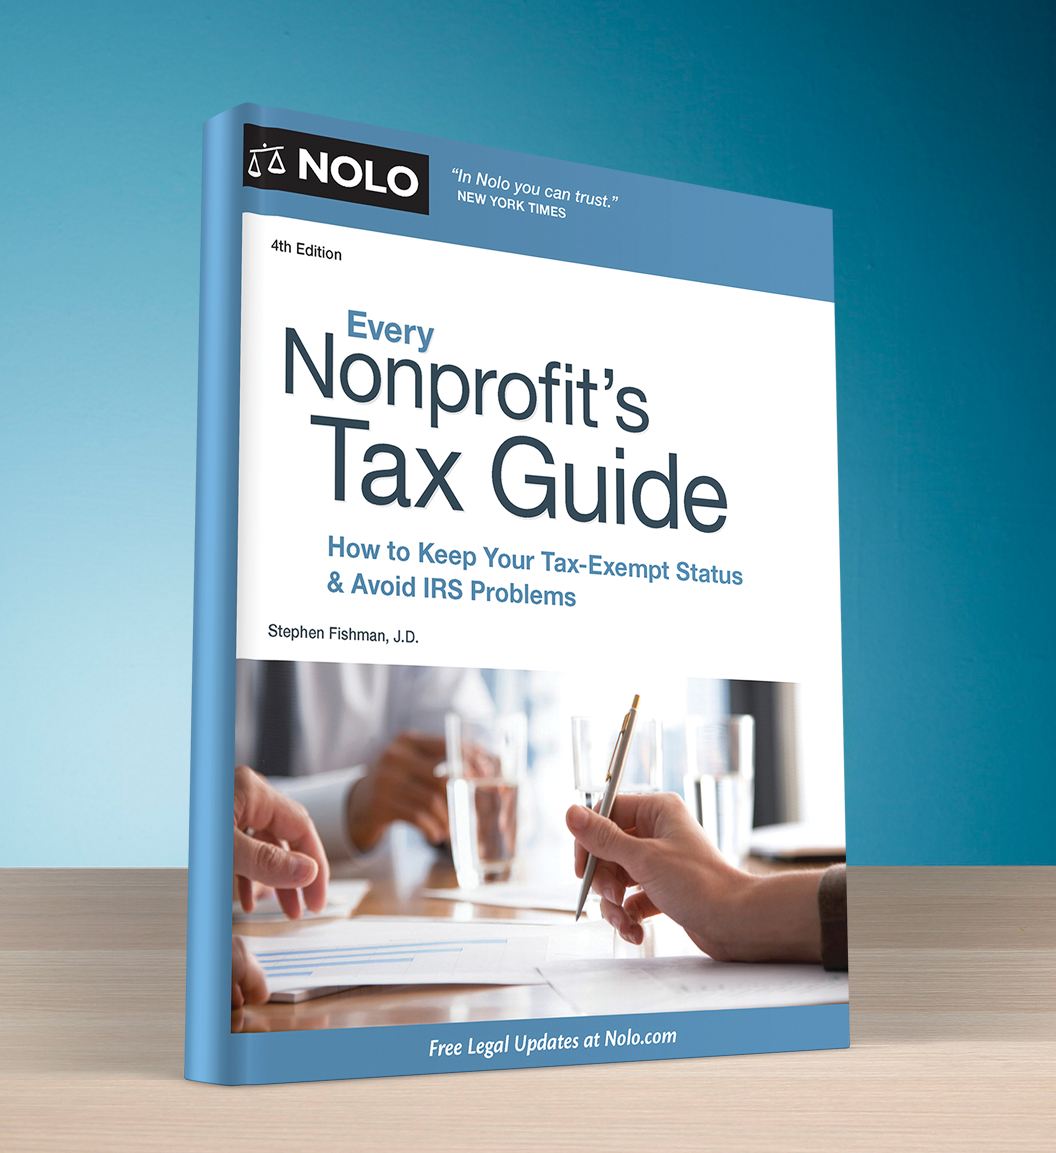 Every Nonprofit's Tax Guide (4th edition) - #4747